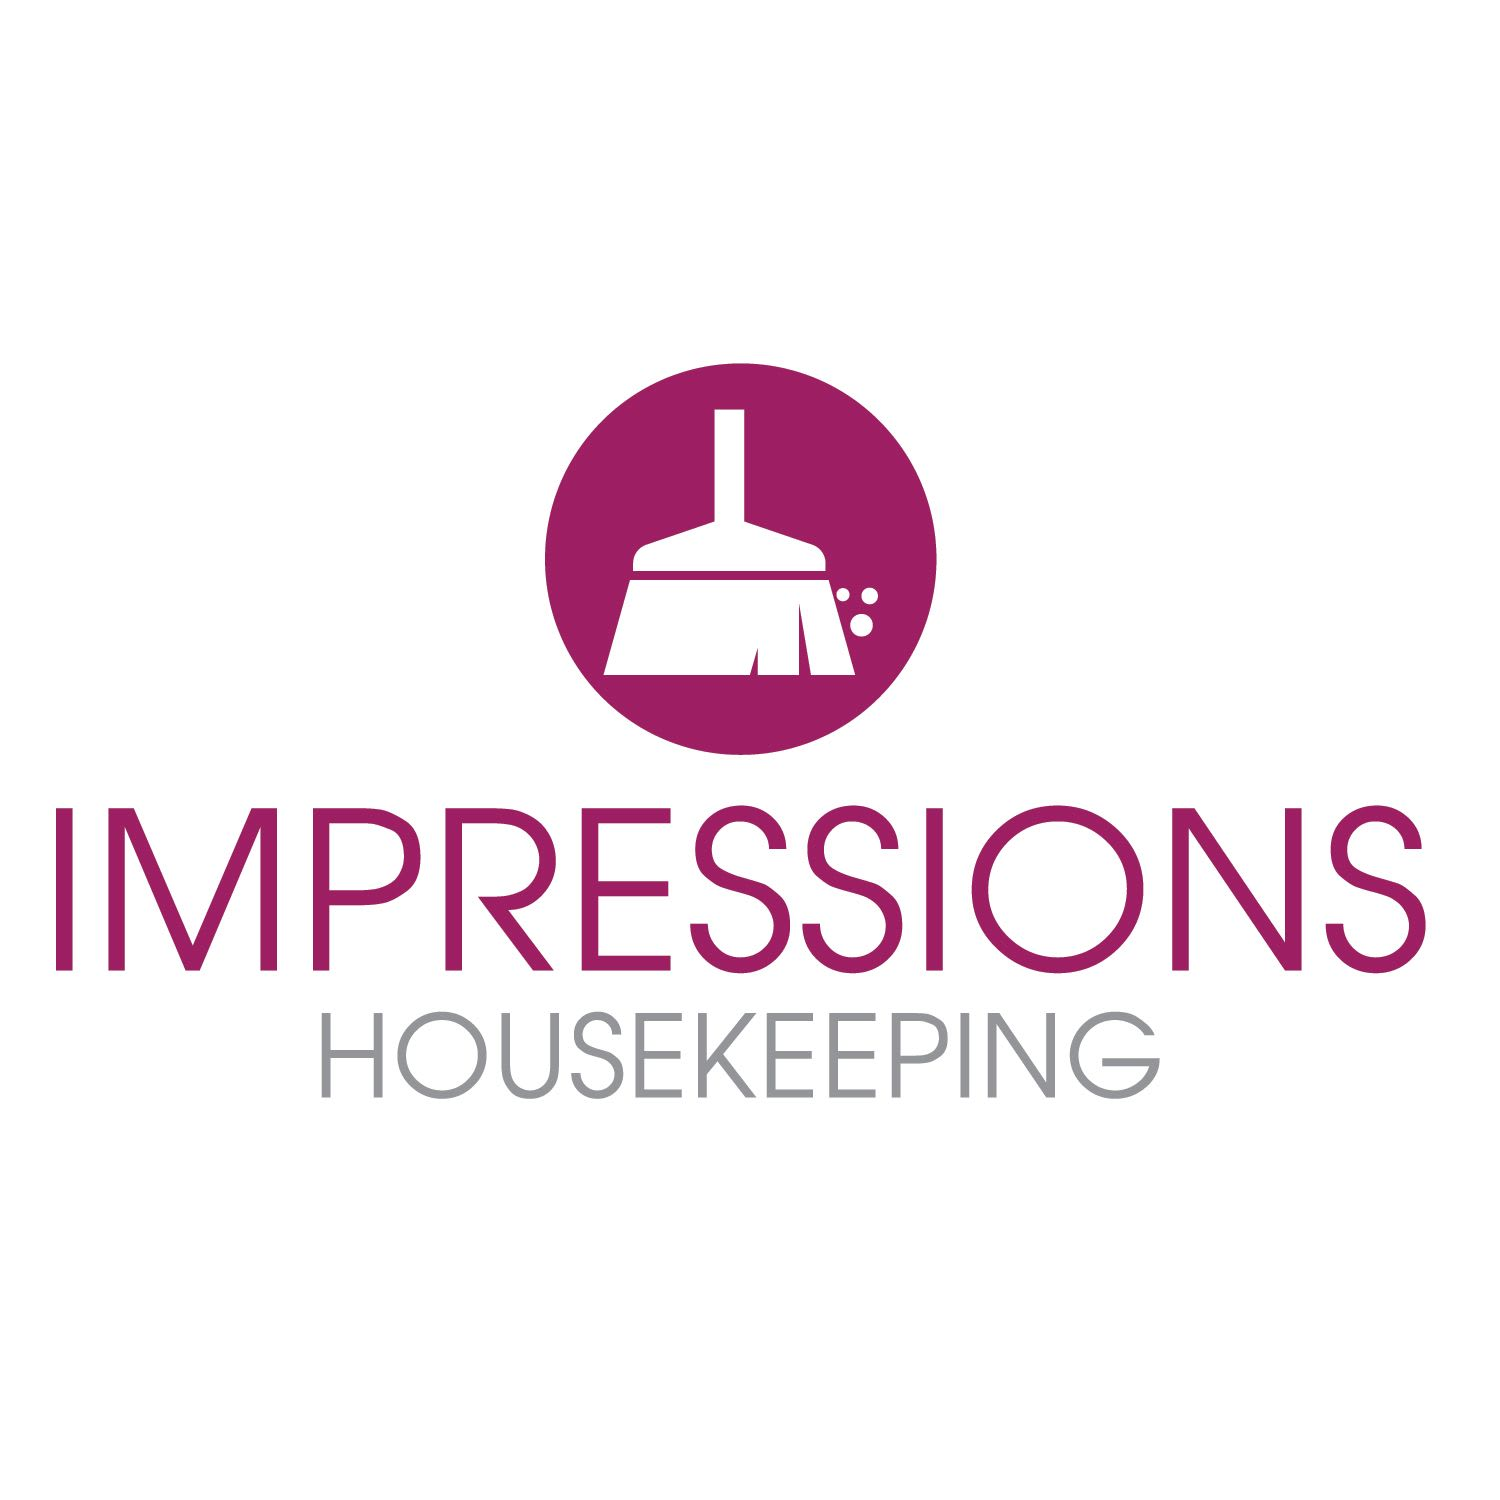 Impressions housekeeping program for senior living residents at Blue Ridge Assisted Living